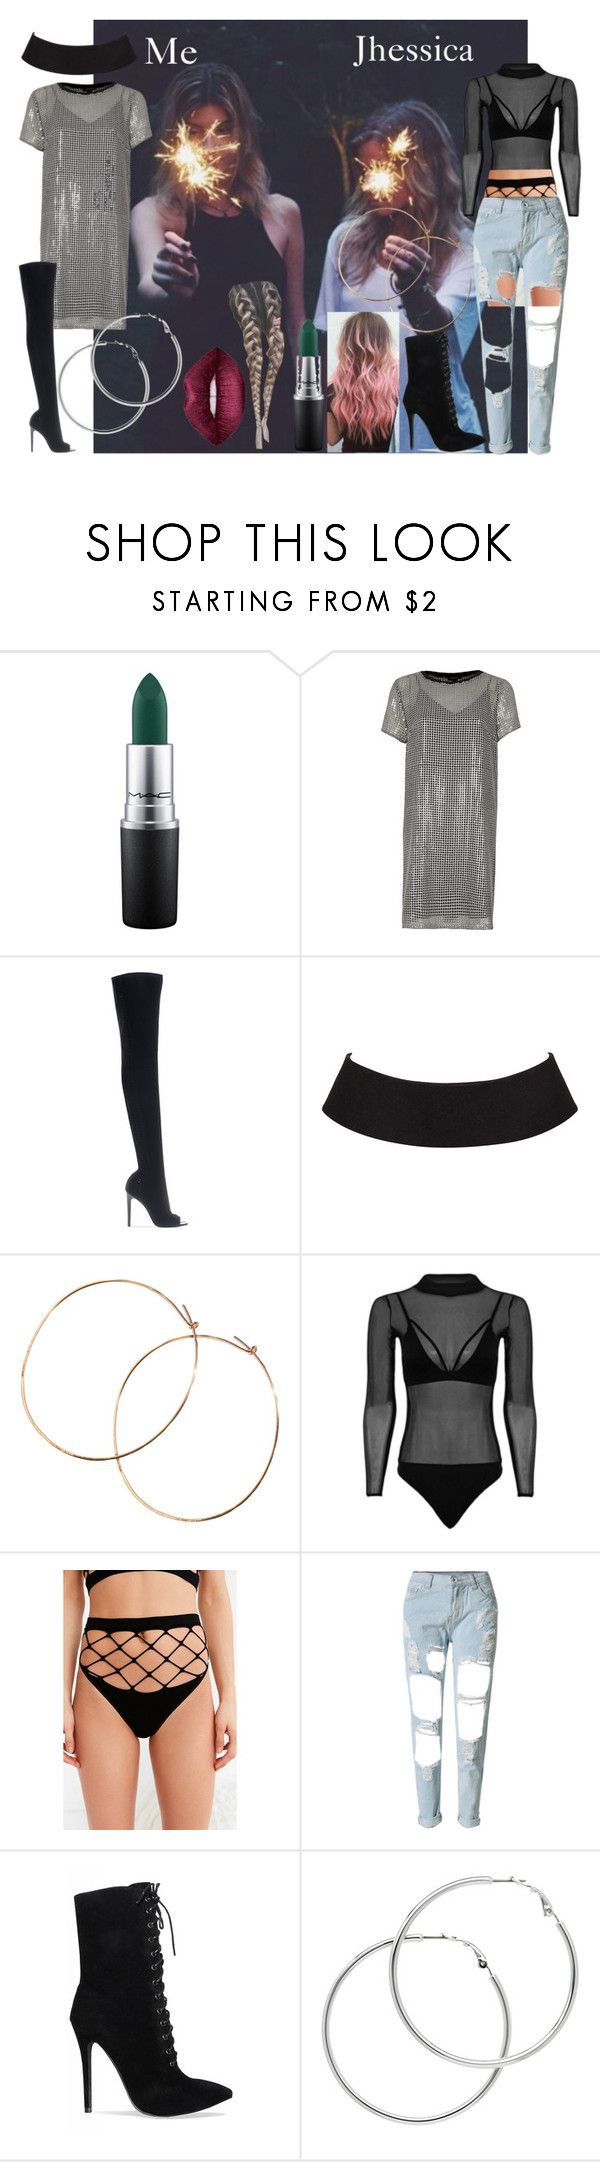 """My birthday party w/ Jhessica in New Orleans"" by wifeofniall17 ❤ liked on Polyvore featuring MAC Cosmetics, River Island, Gianvito Rossi, Jennifer Creel, Out From Under, WithChic, Melissa Odabash and Lime Crime"